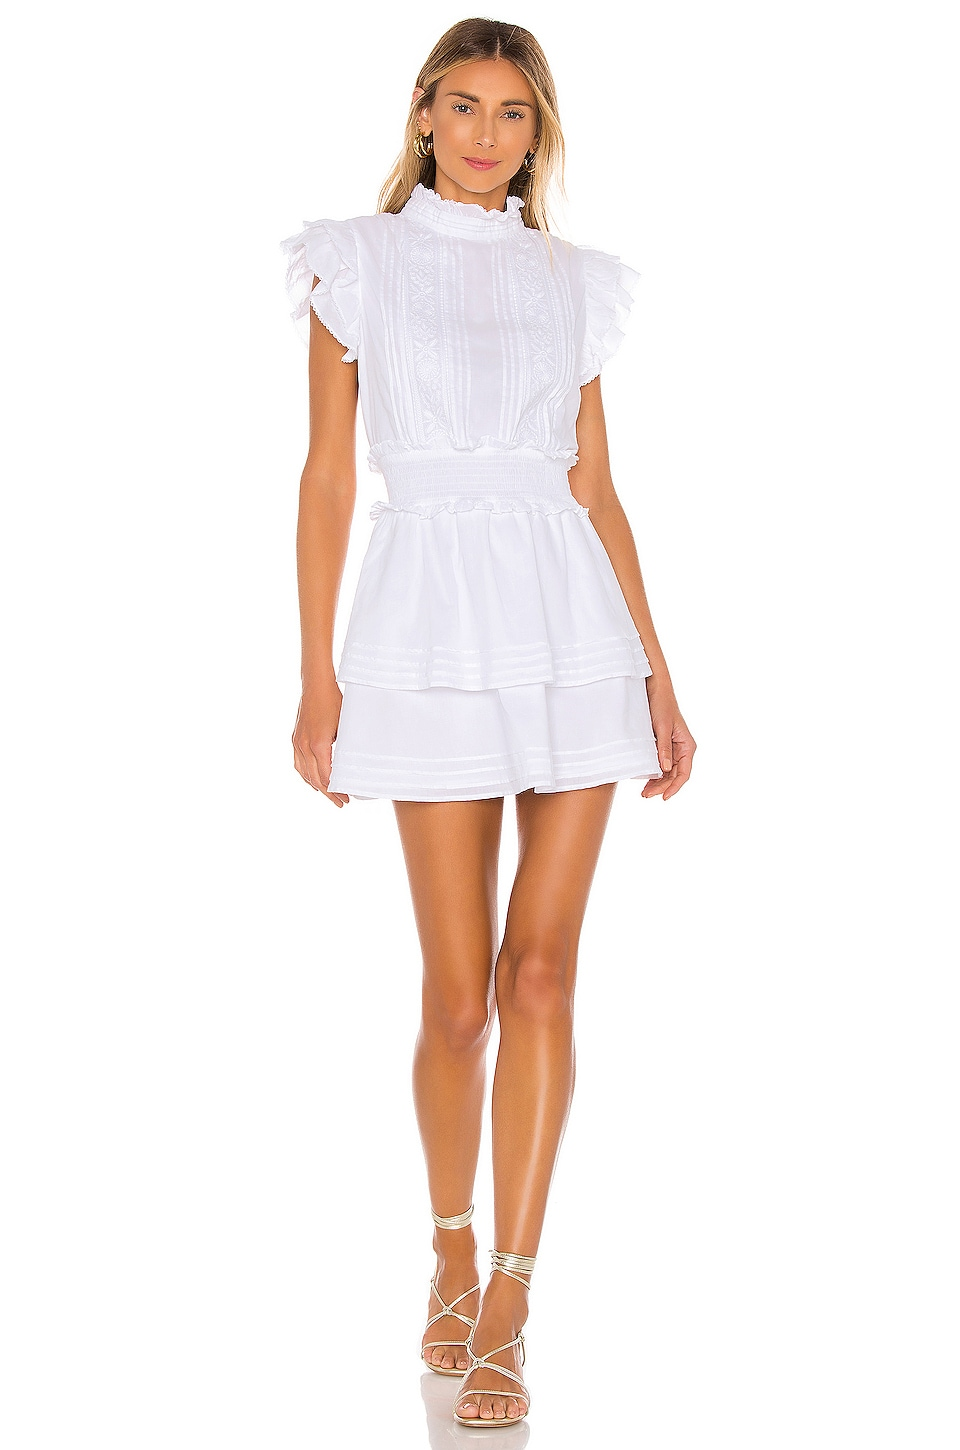 Versailles Mini Dress             Cleobella                                                                                                       CA$ 210.08 6